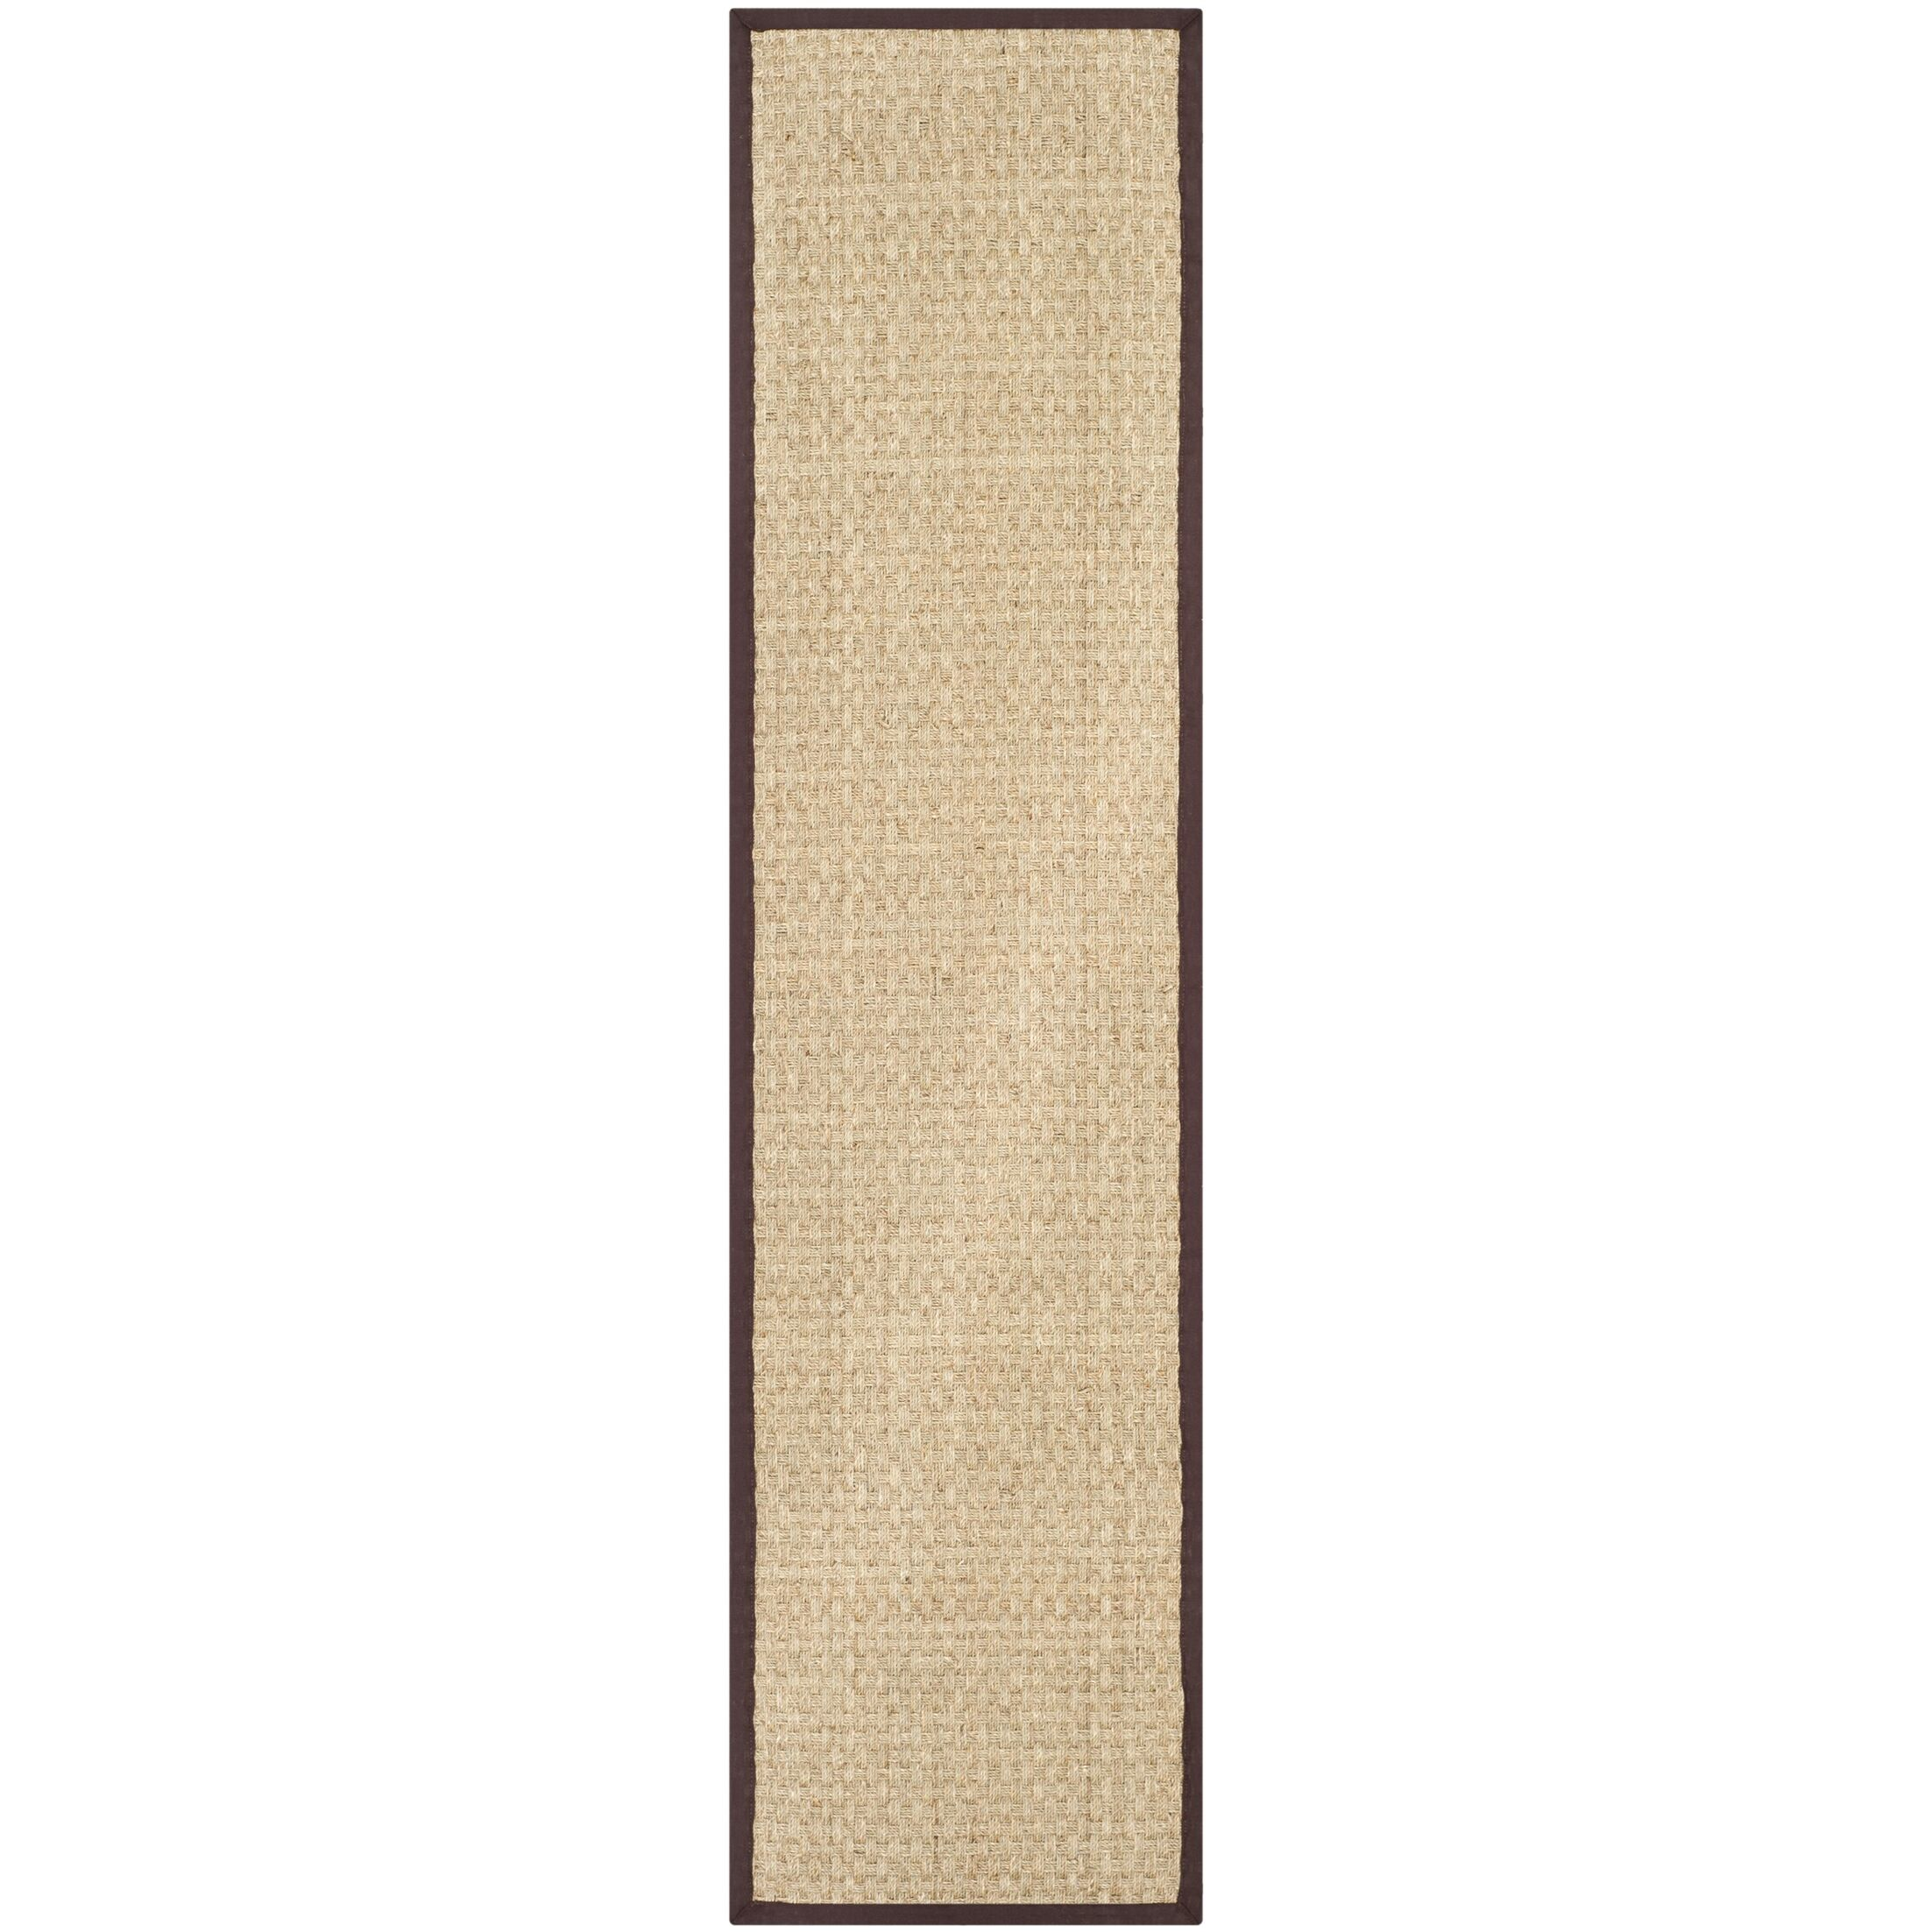 Dufour Hand-Woven Natural/Brown Area Rug Rug Size: Runner 2'6